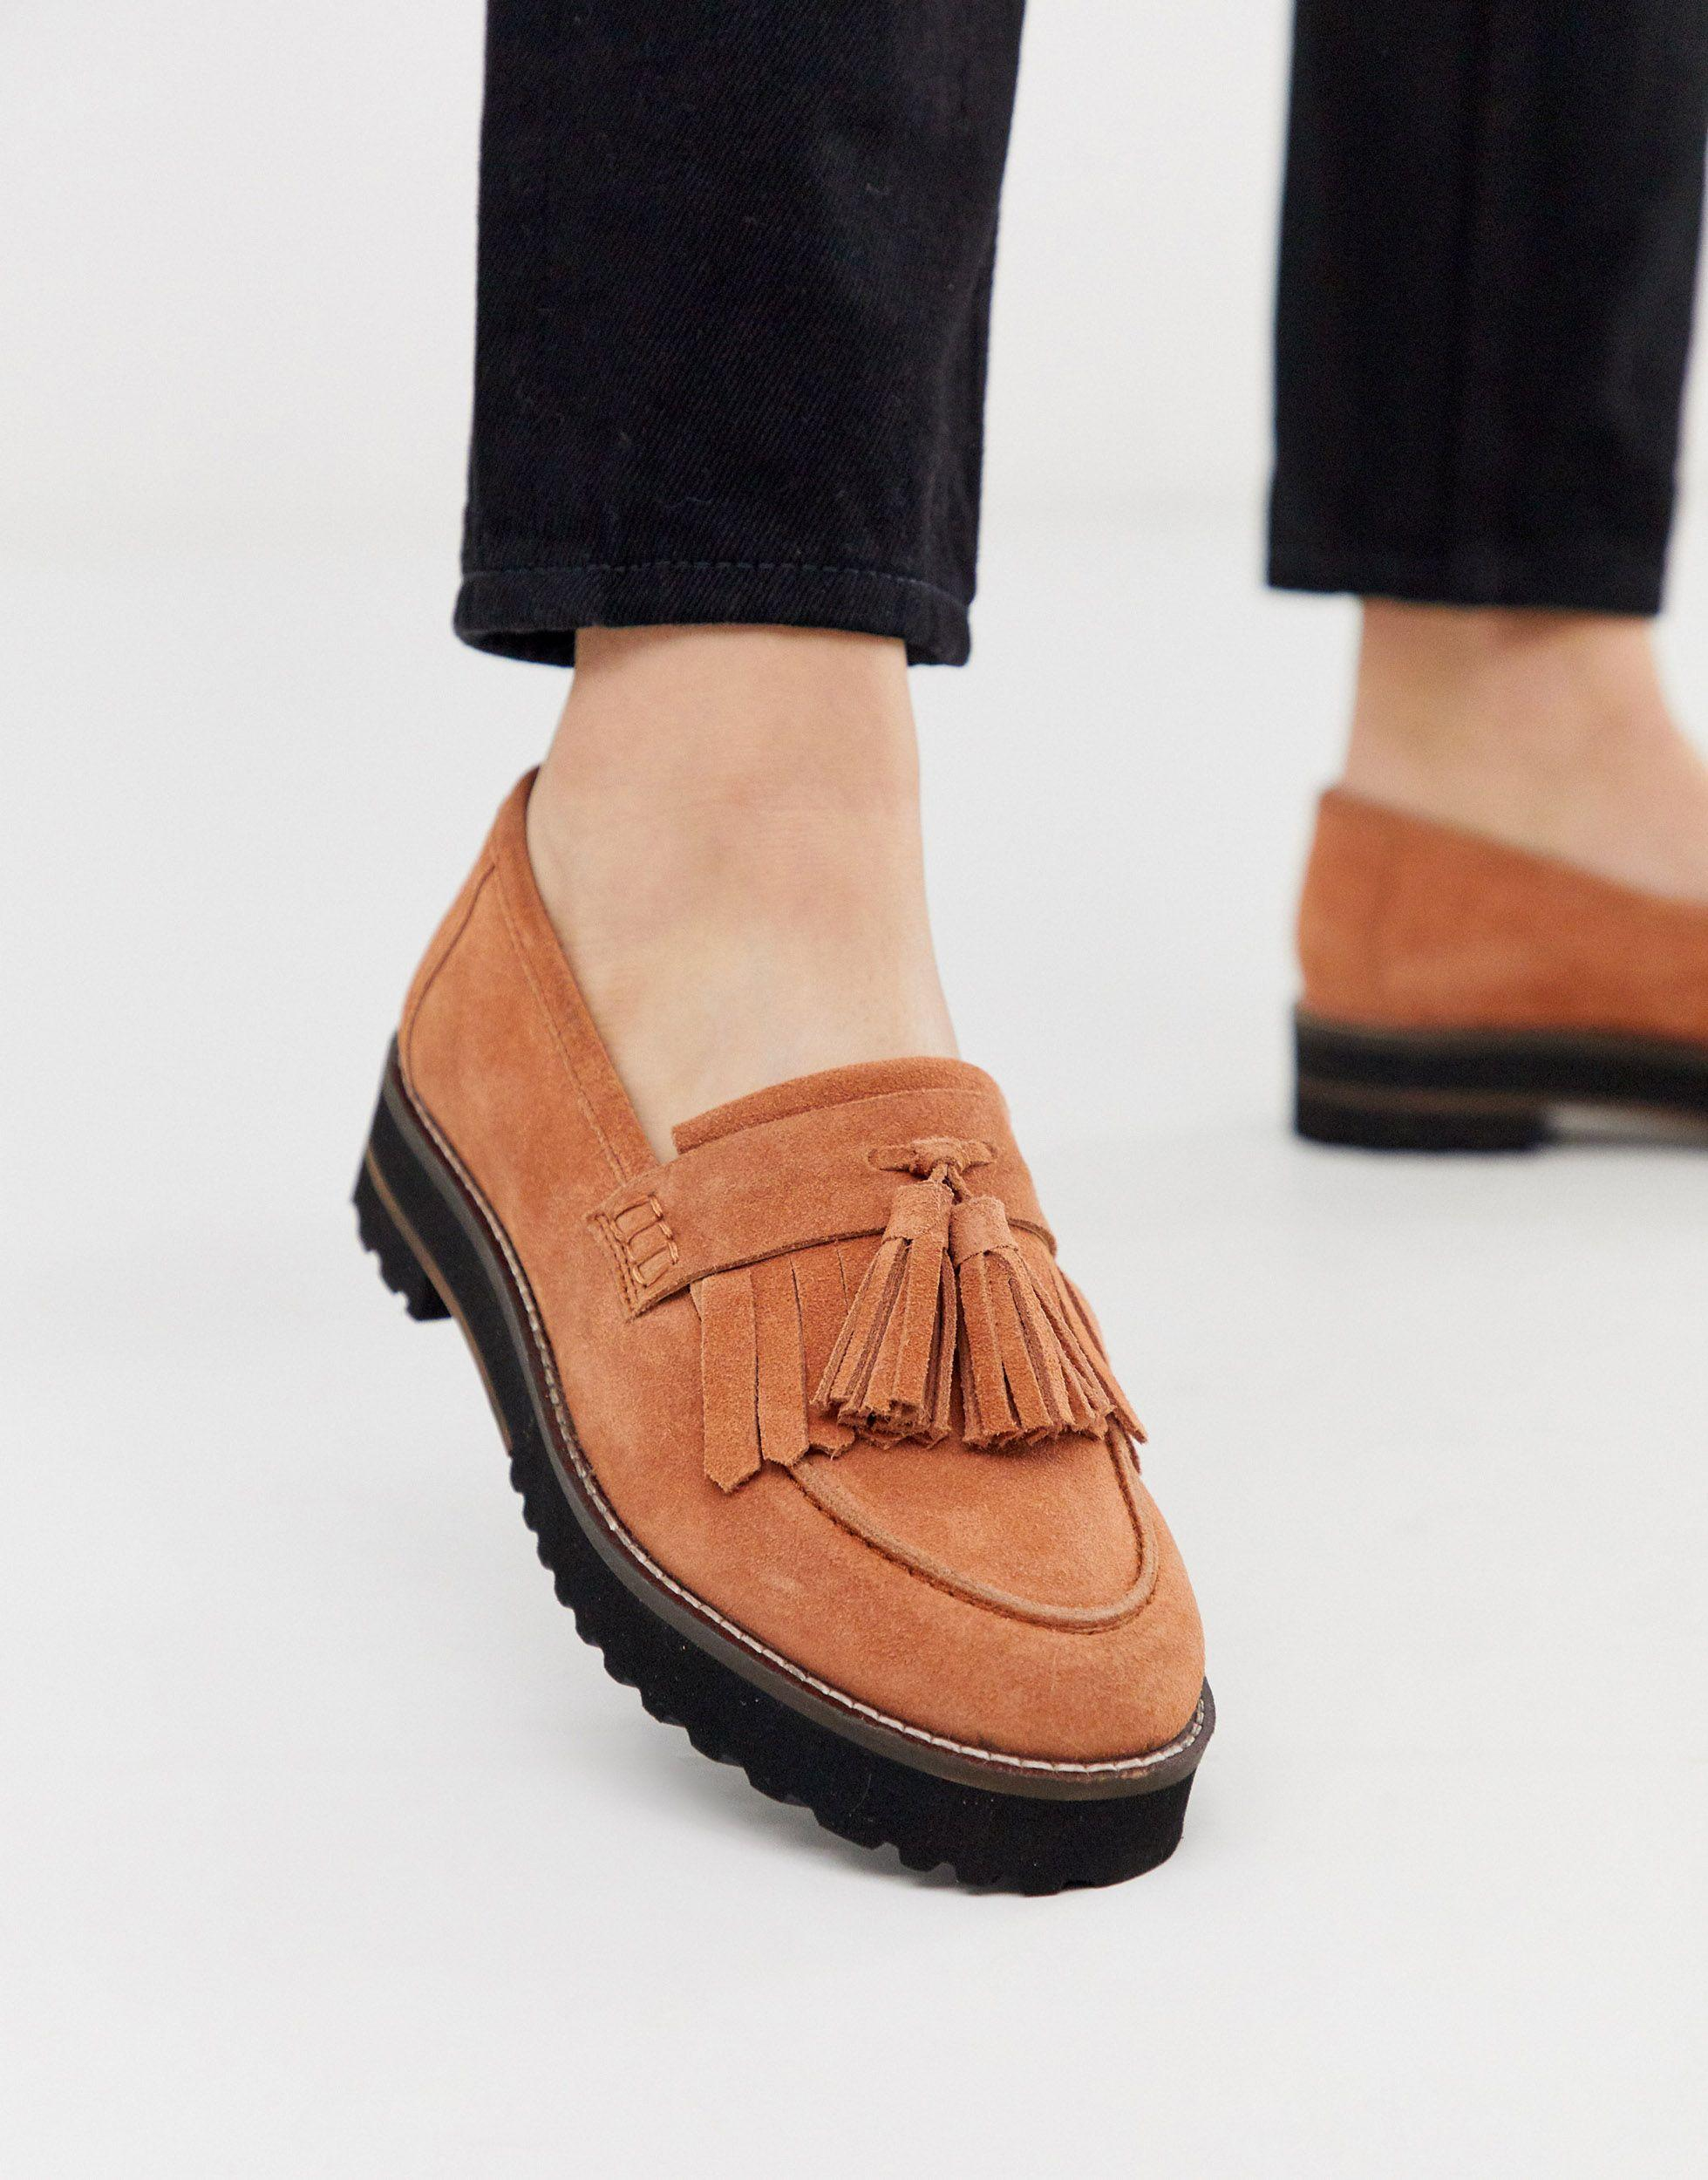 ASOS Meze Chunky Fringed Suede Loafers